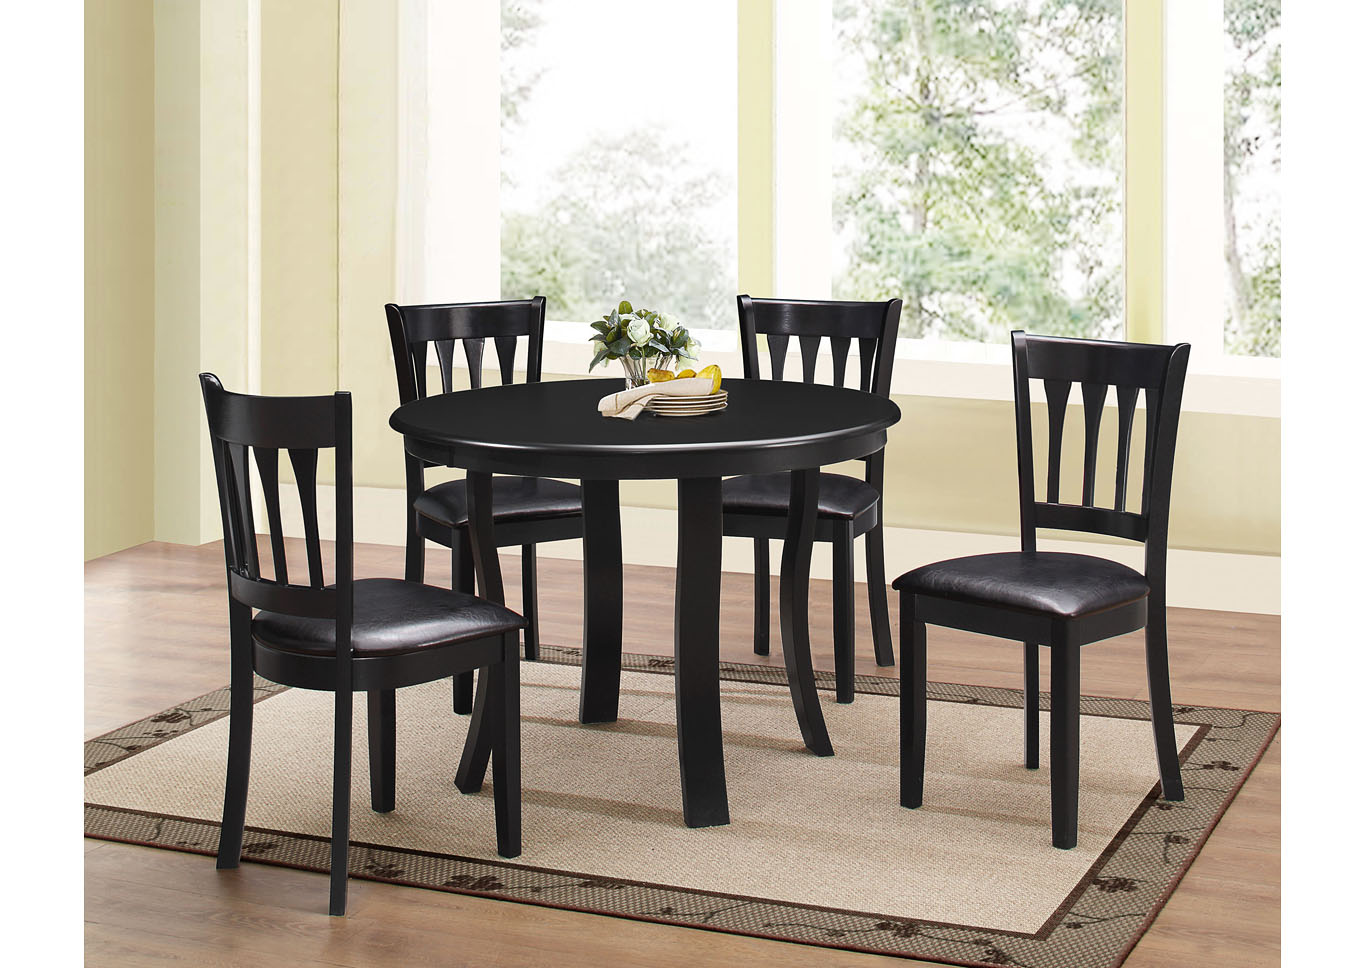 Ebony 5pc Dining Set,Instore